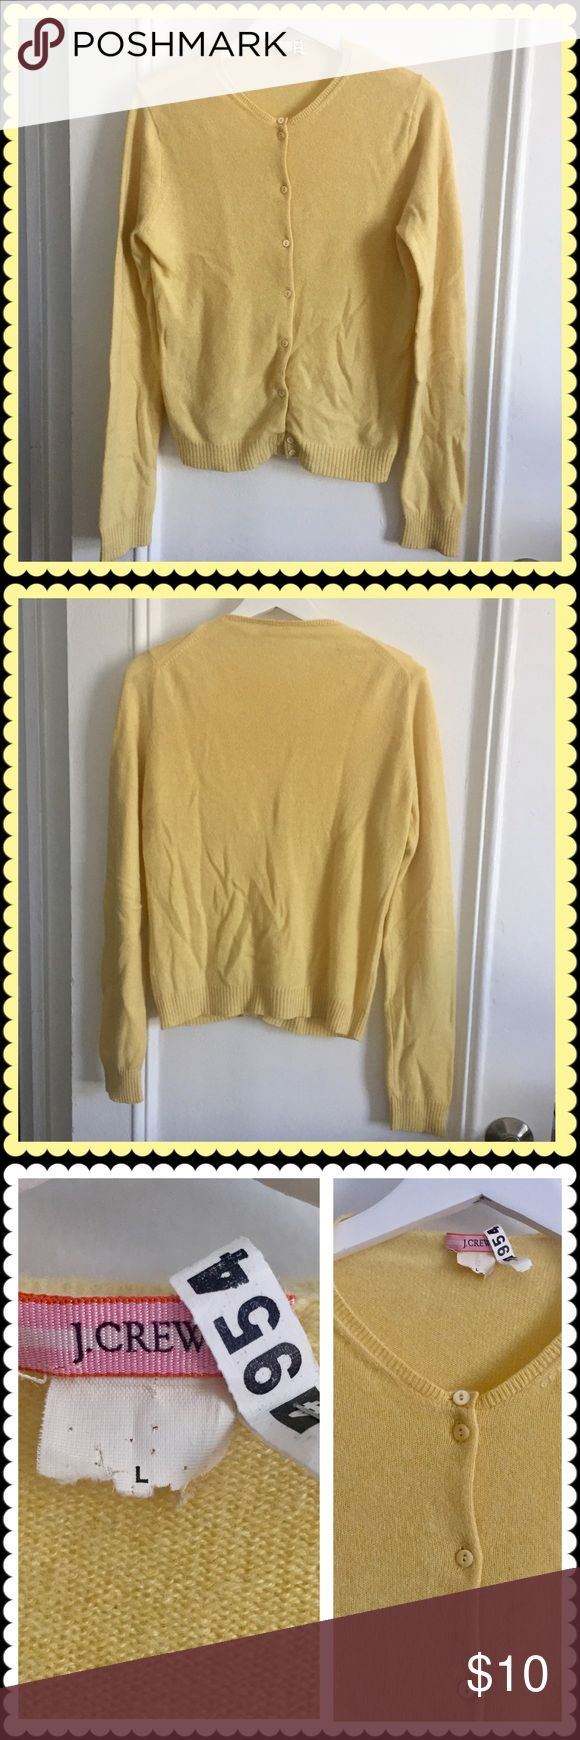 🎁Sale🎁 J. Crew cashmere cardigan. Price firm. J. Crew yellow cashmere cardigan in size L. The label got cut off from dry cleaning tag being attached with staples. So I don't have any proof to put here as its cashmere. Price reflects it. There is a slight discoloration on the back near shoulder as the last photo. Worn and Dry cleaned. J. Crew Sweaters Cardigans